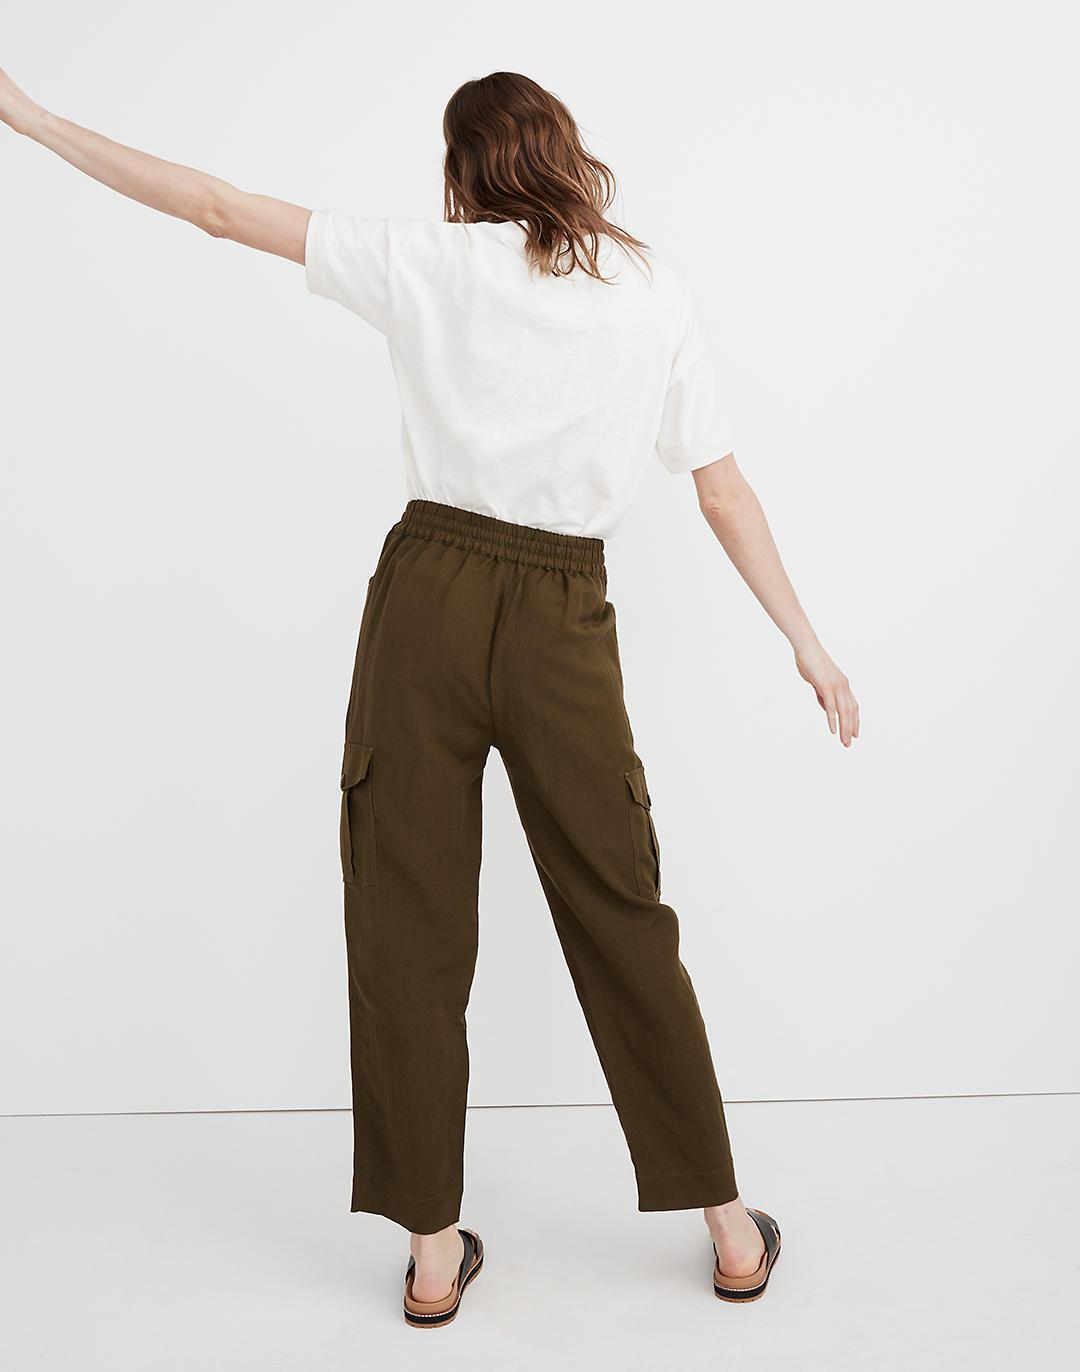 Tapered Huston Cargo Pull-On Crop Pants 2